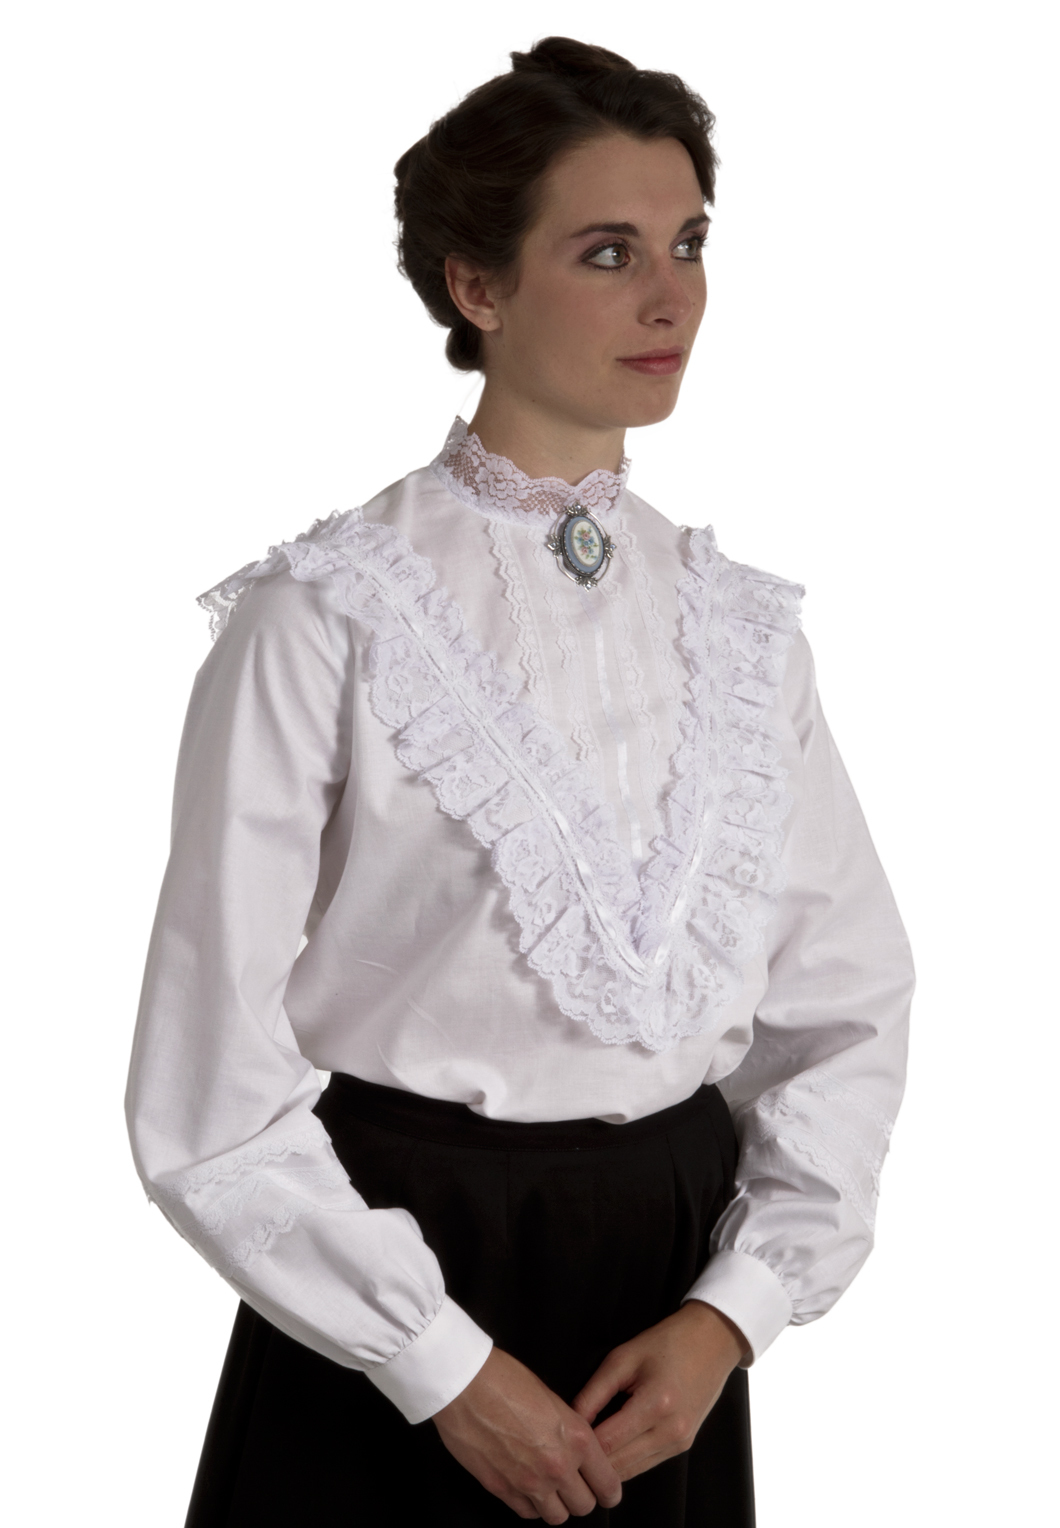 Adele Edwardian Blouse Recollections